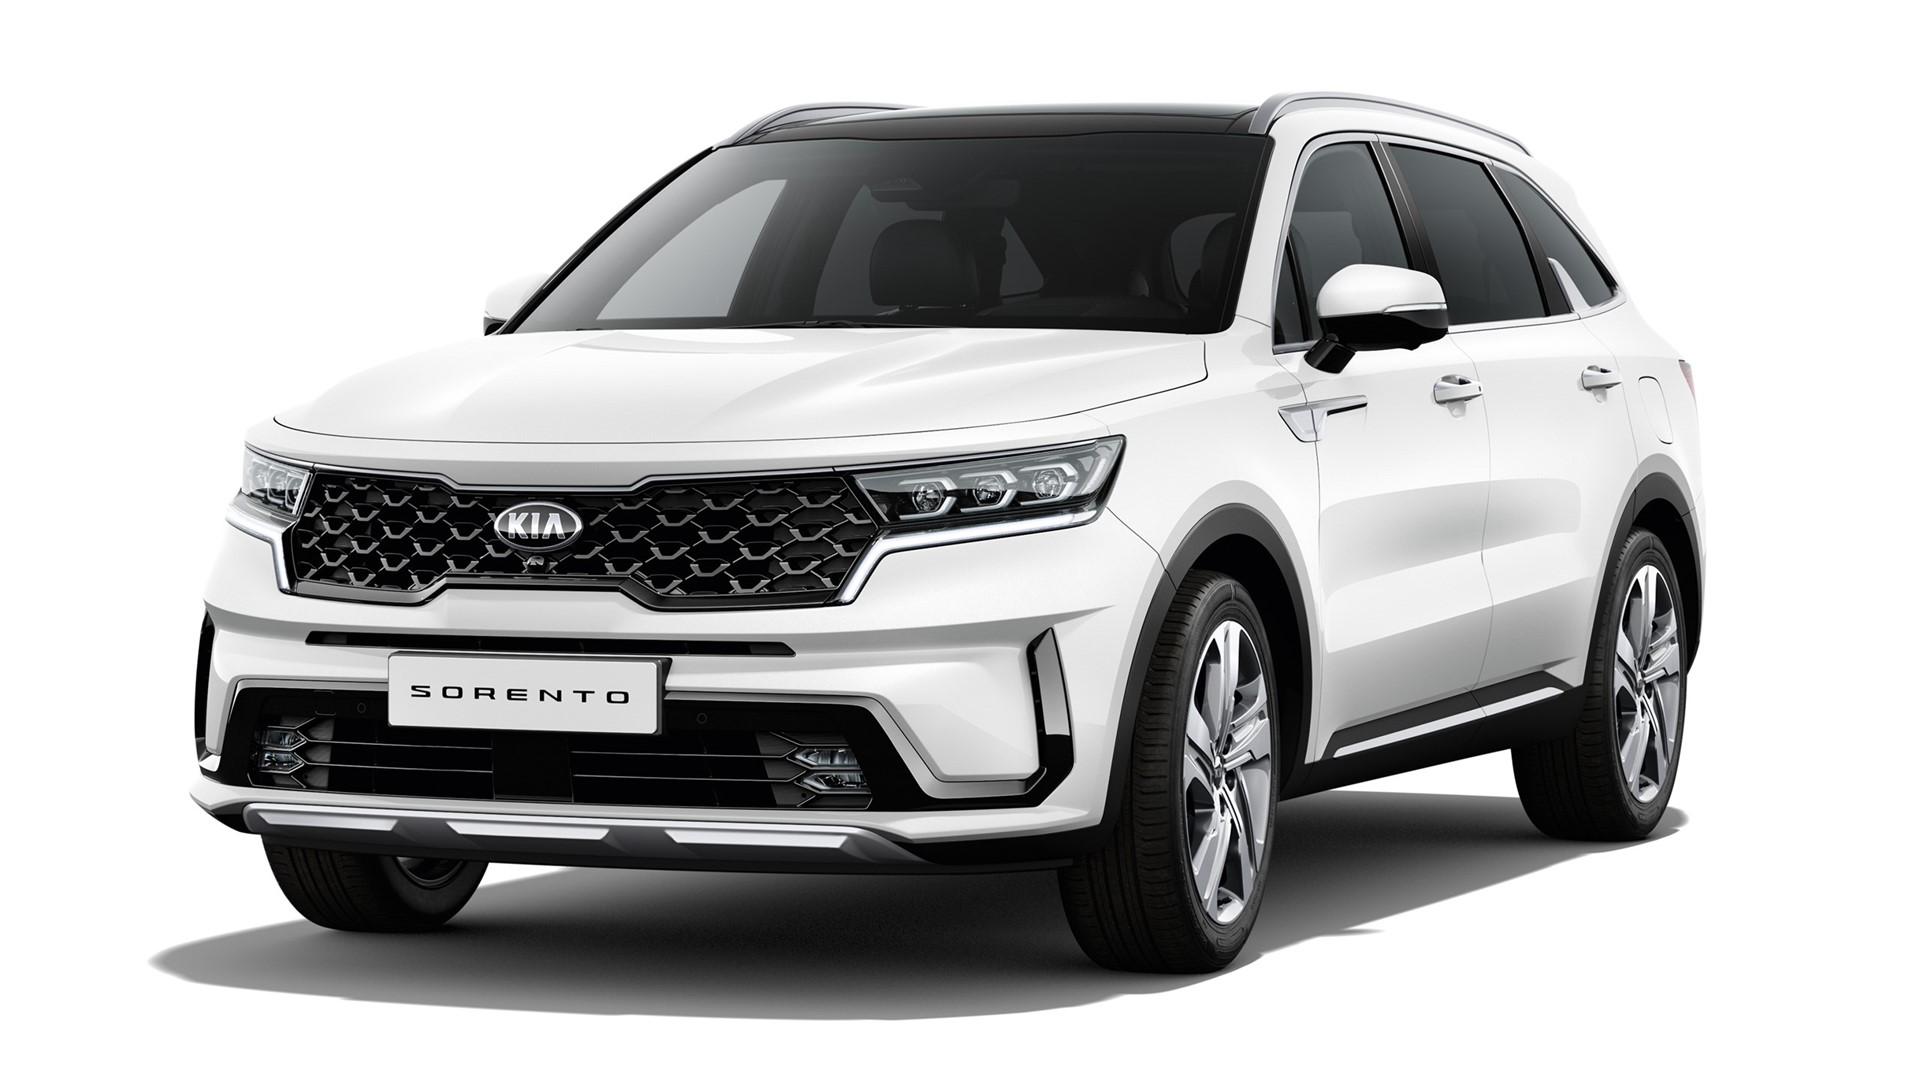 The new Kia Sorento - White Background - 3-4 Front